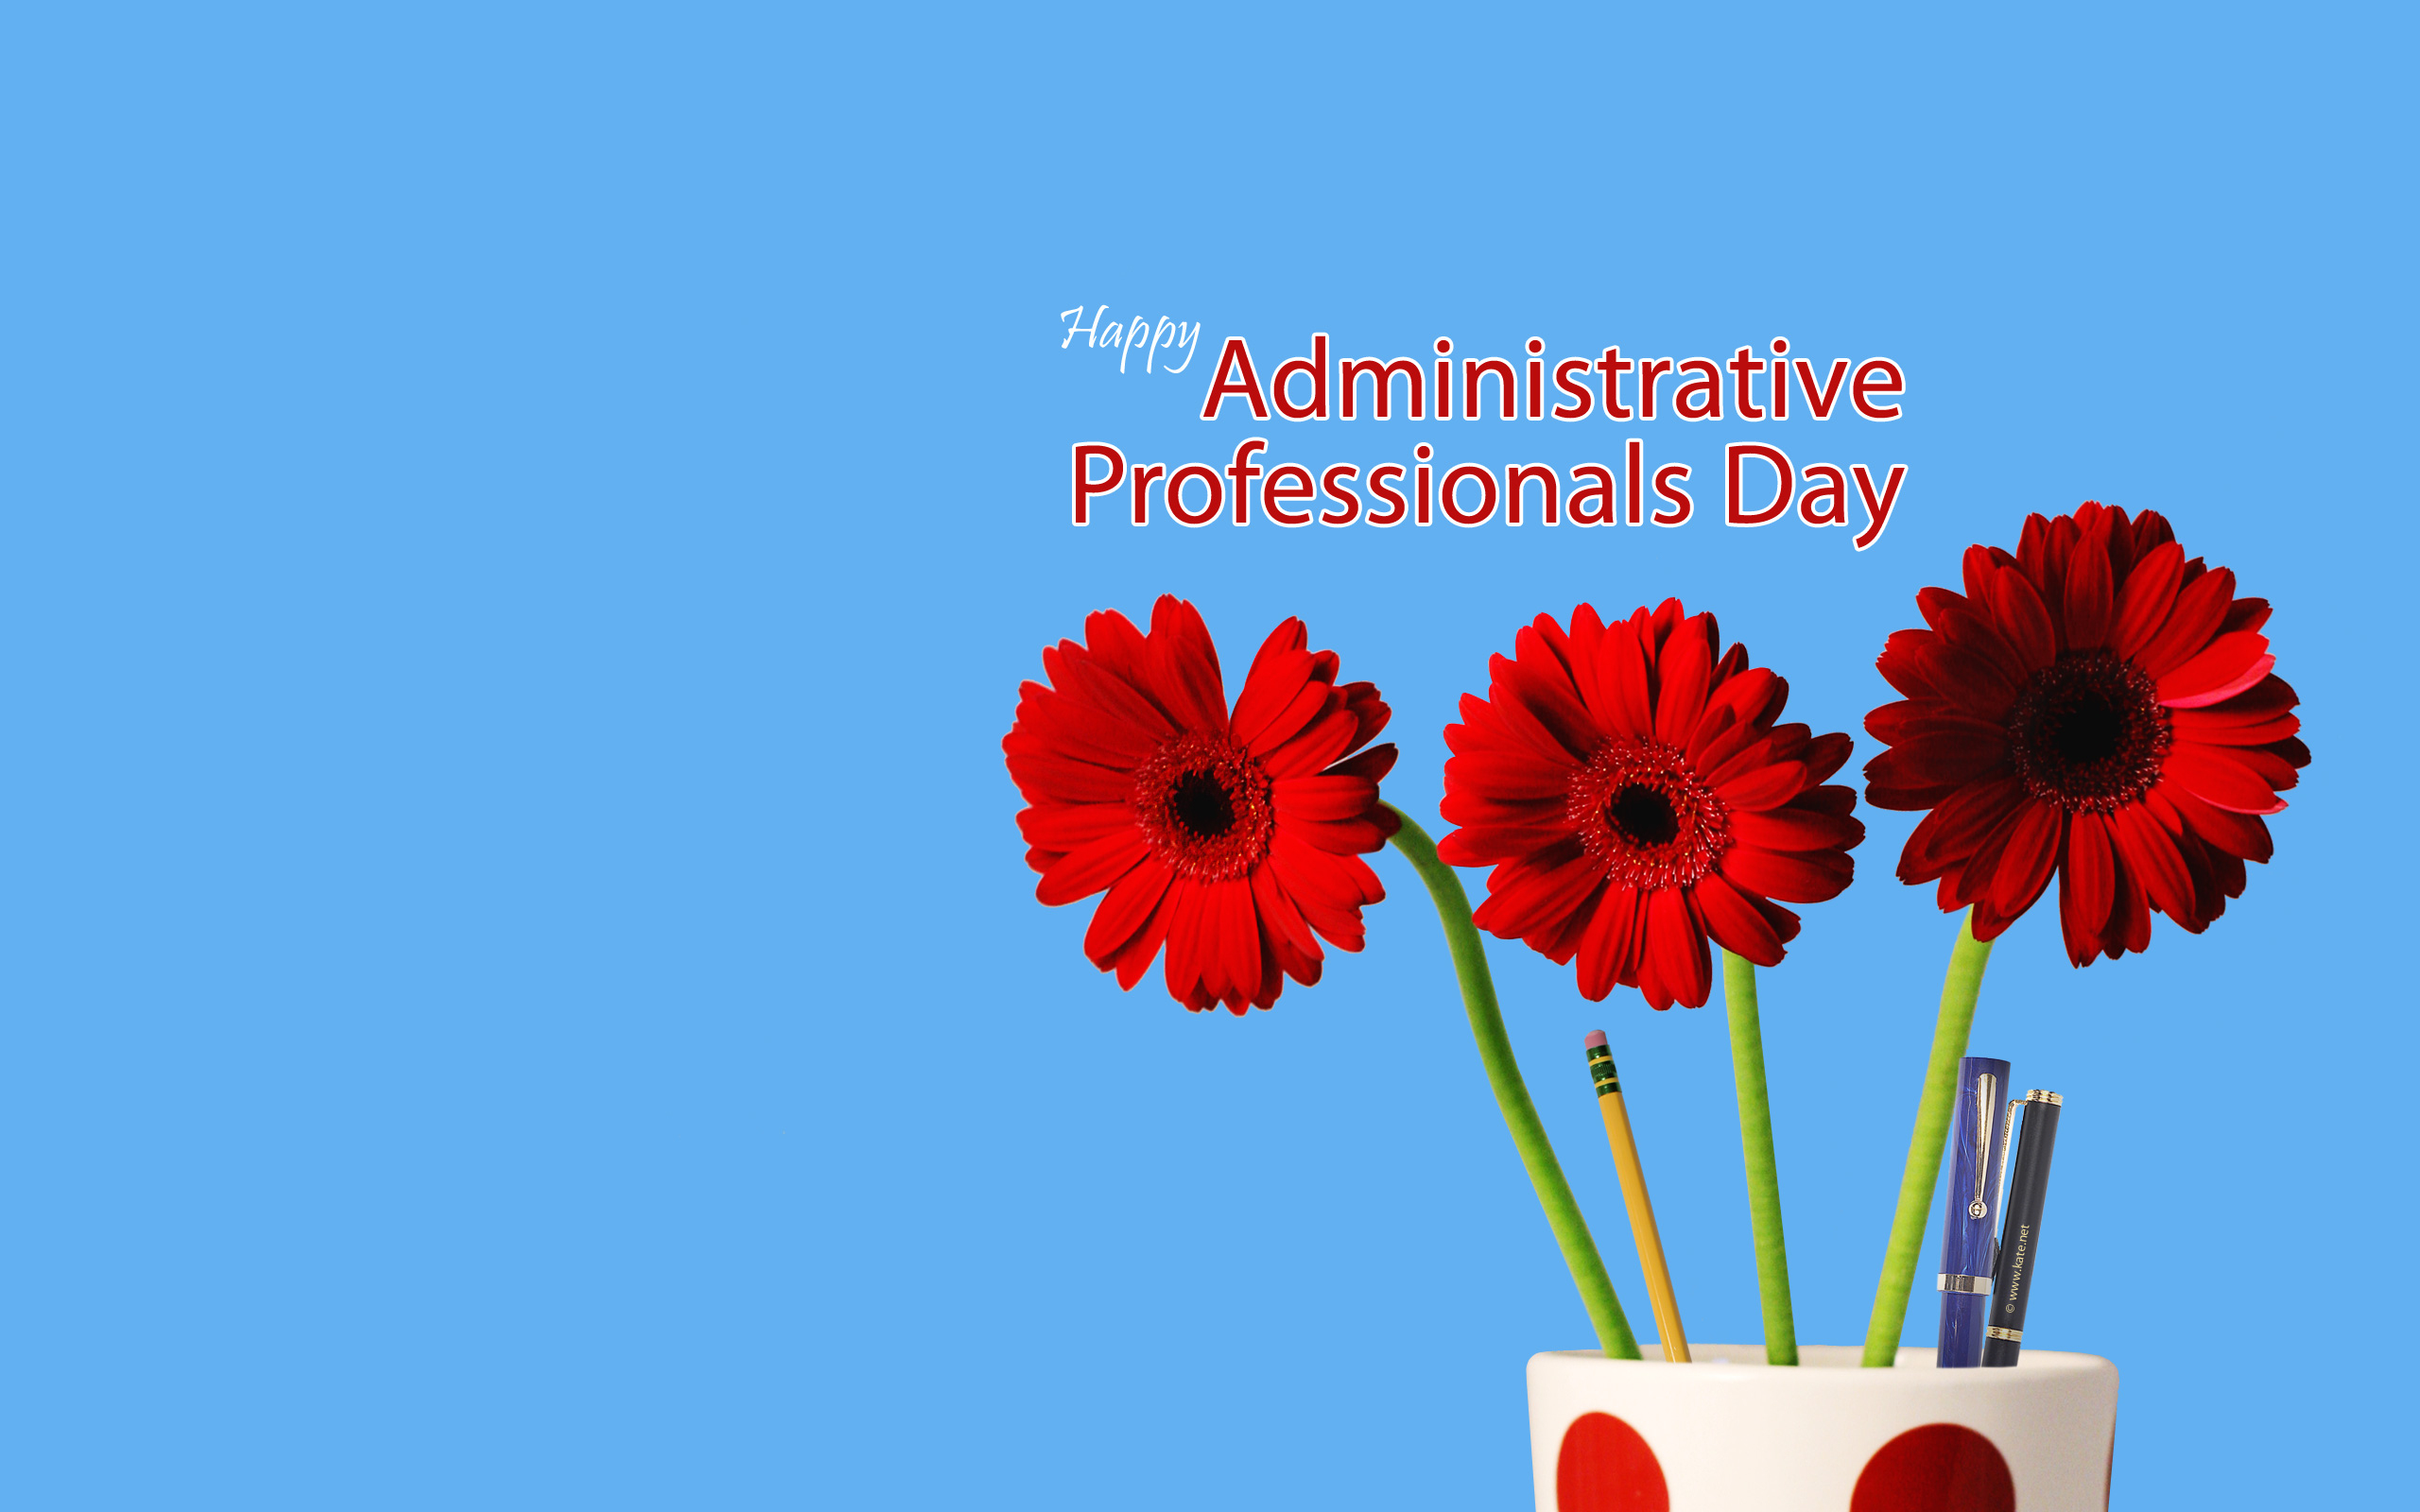 Administrative Professionals Day Wallpaperkate - Administrative Professionals Cards Printable Free